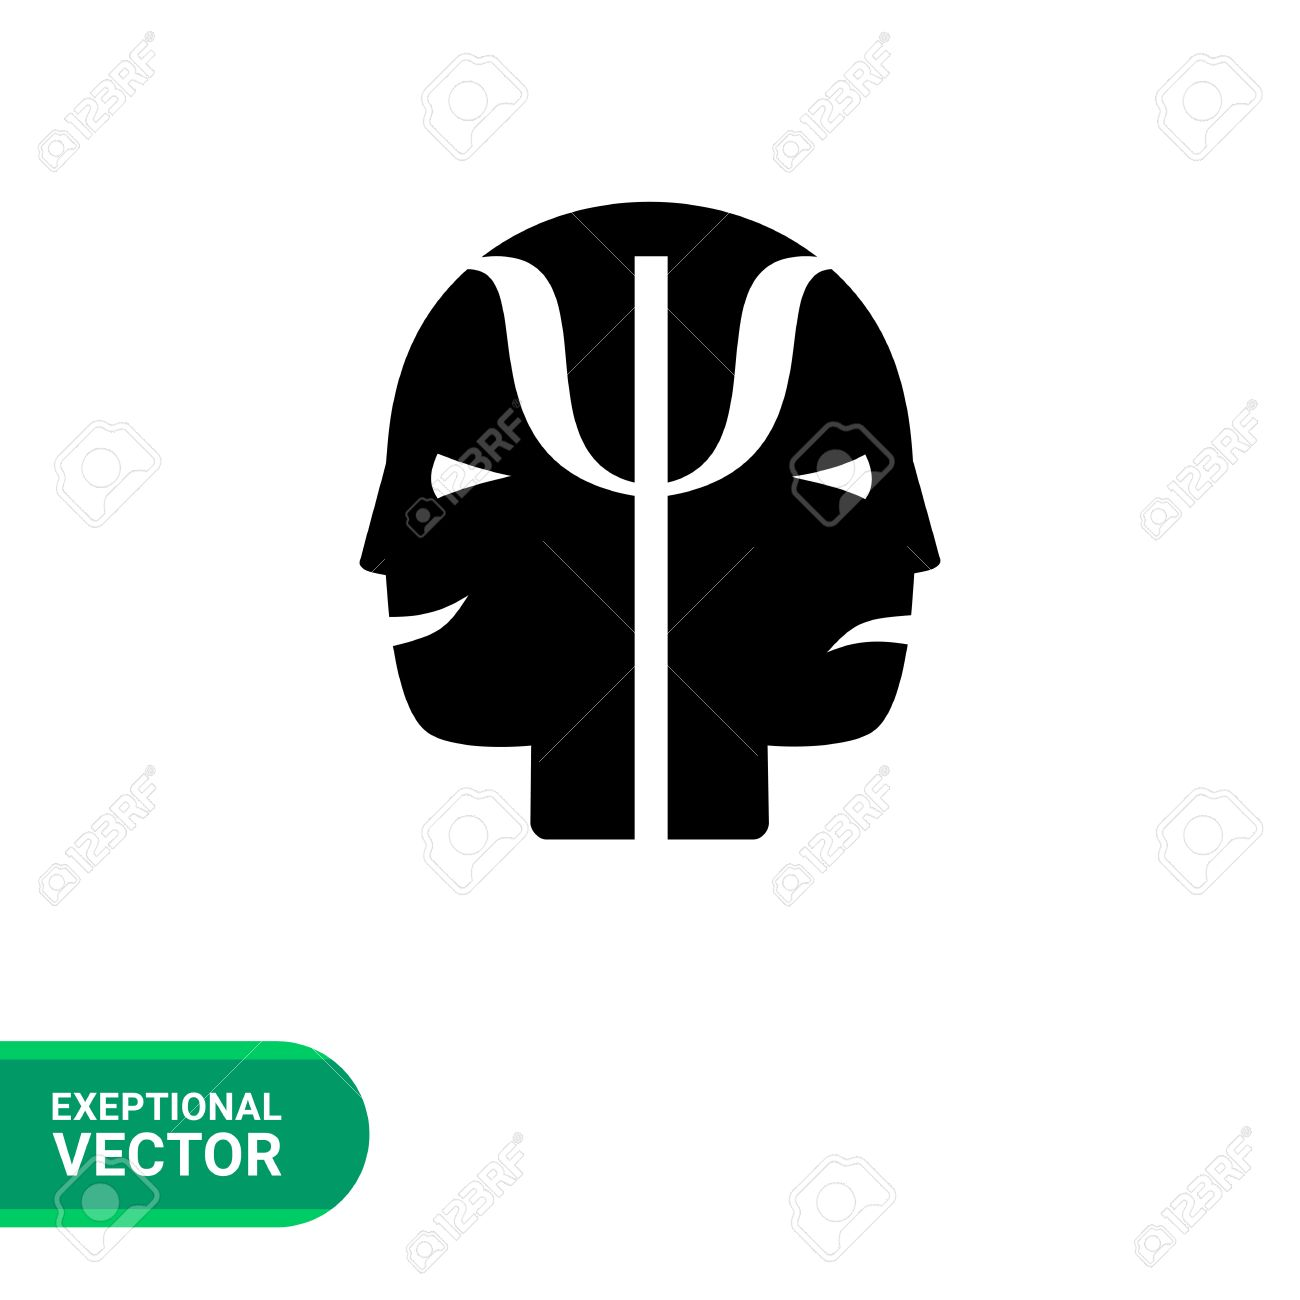 Monochrome vector icon of two human faces with joy and sadness monochrome vector icon of two human faces with joy and sadness expressions representing psychology concept stock biocorpaavc